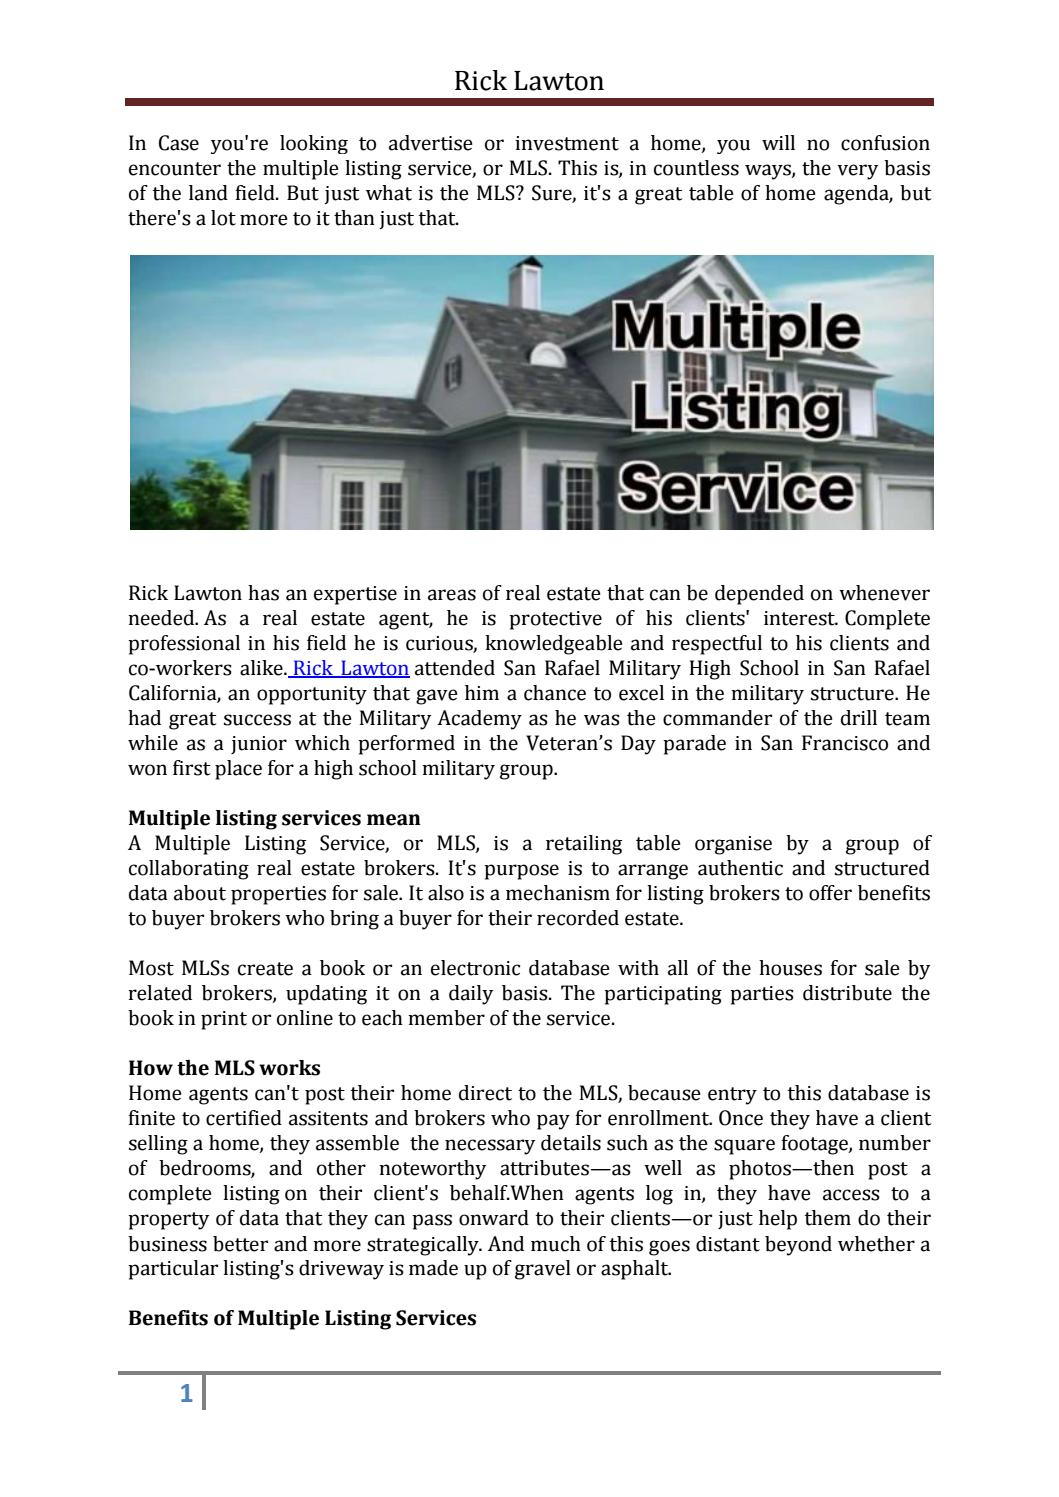 Rick lawton - Multiple Listing Services by Rick Lawton - issuu